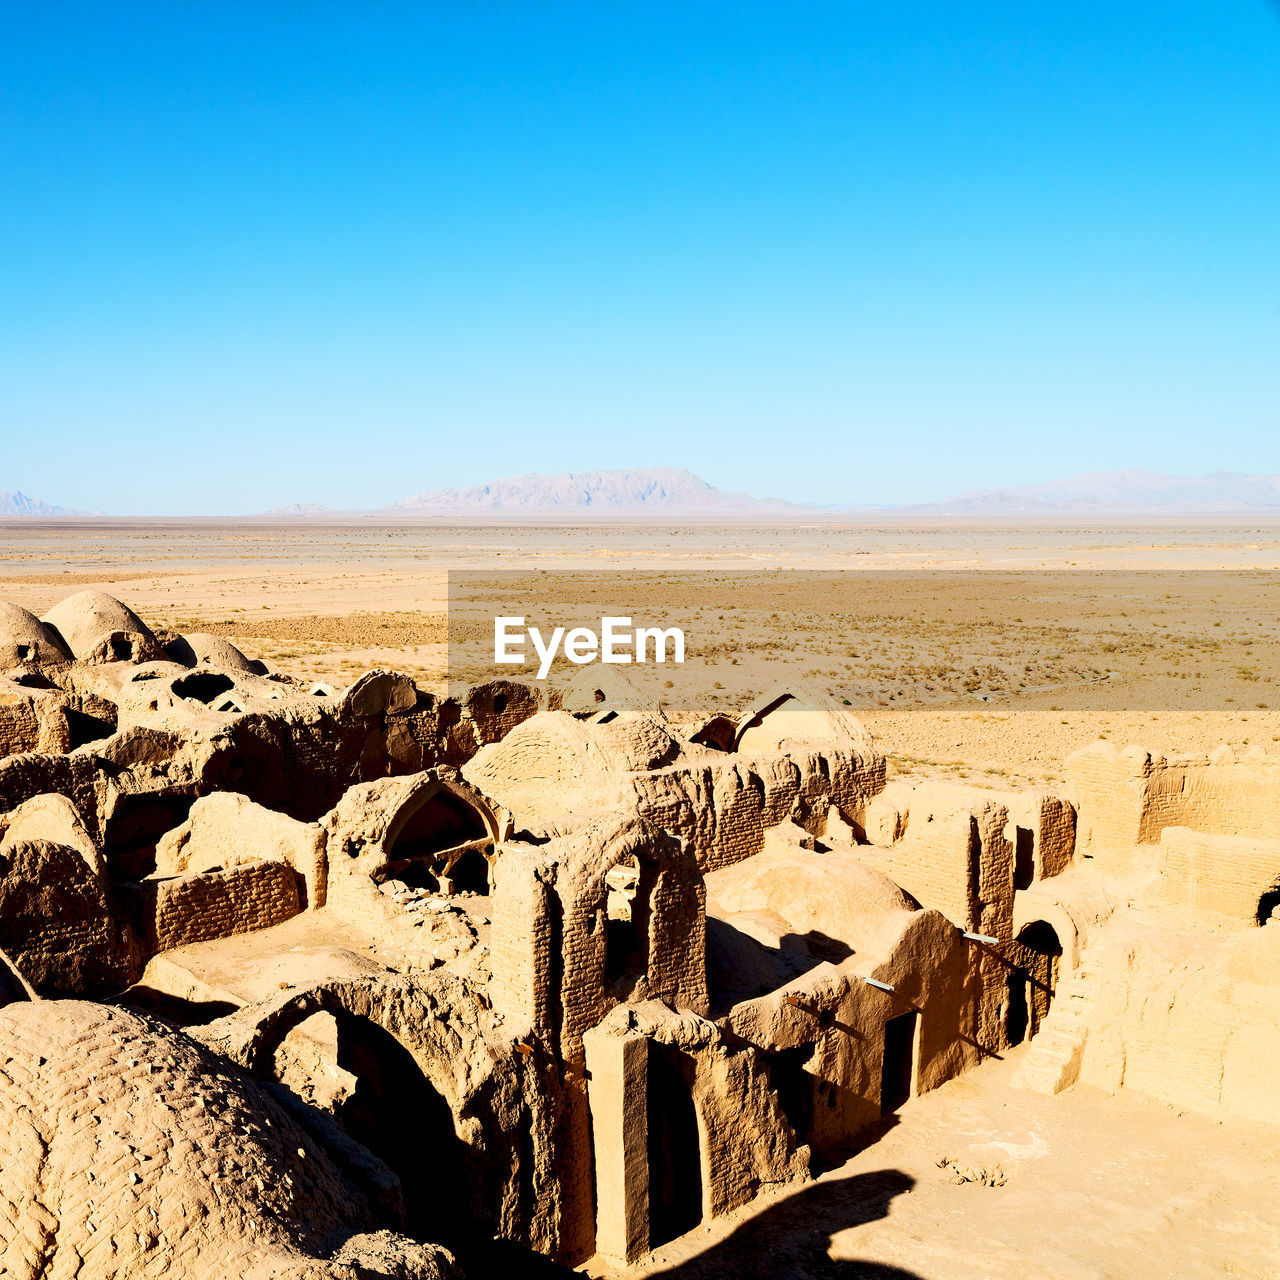 sky, clear sky, copy space, ancient, travel destinations, nature, history, tourism, the past, architecture, blue, travel, day, no people, ancient civilization, sunlight, old ruin, built structure, old, scenics - nature, archaeology, outdoors, climate, ruined, arid climate, deterioration